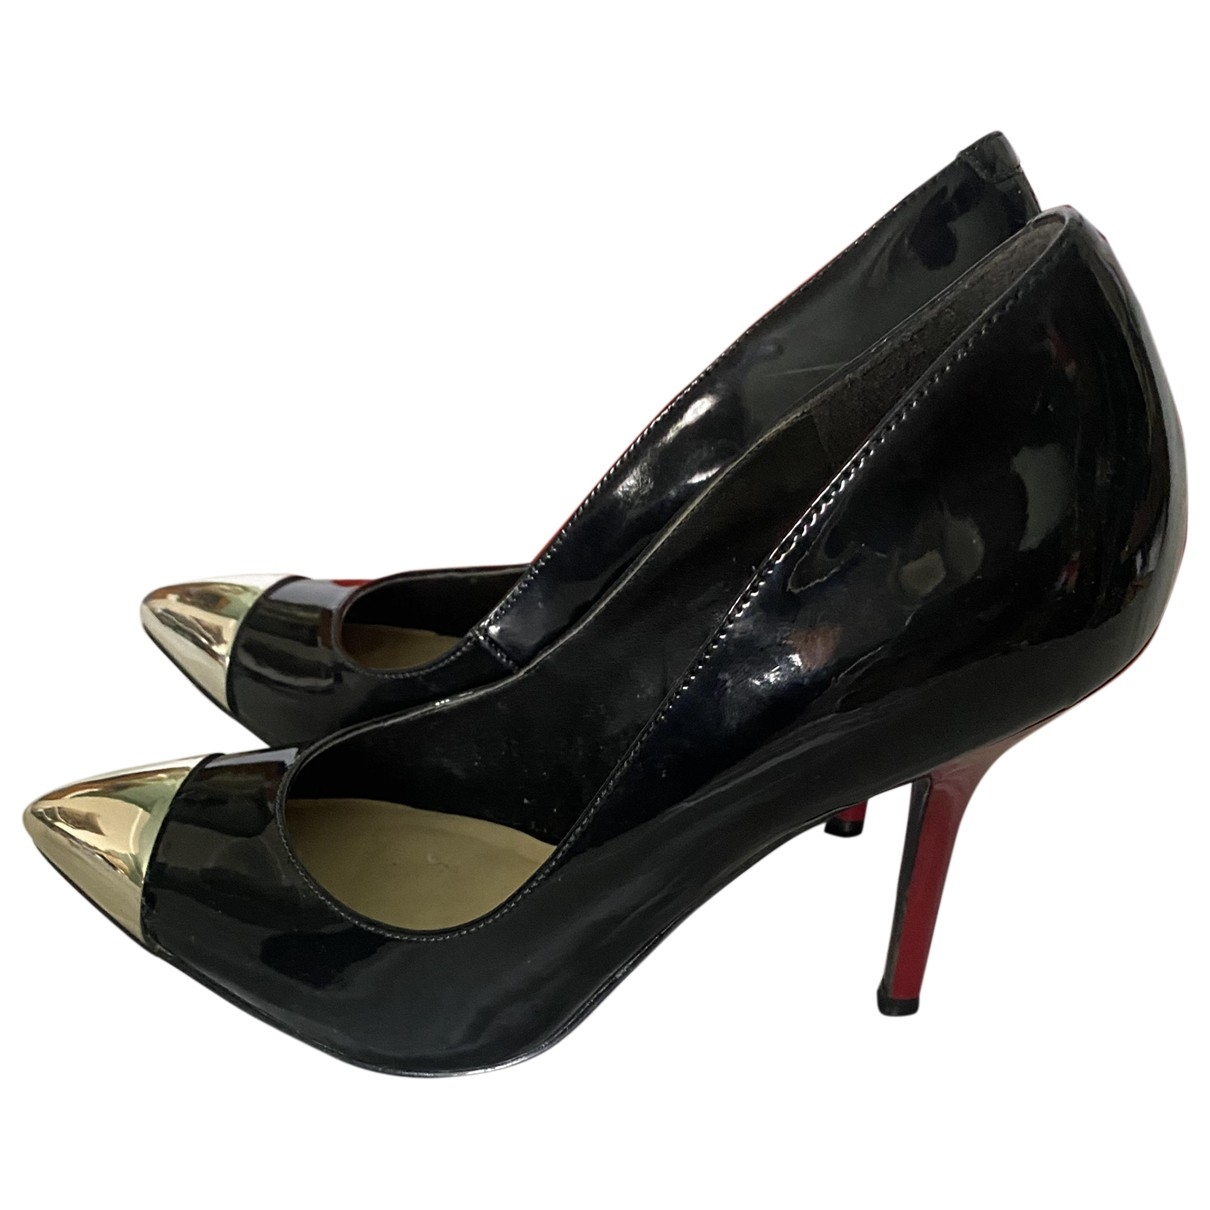 Guess \N Black Patent leather Heels for Women 7 US